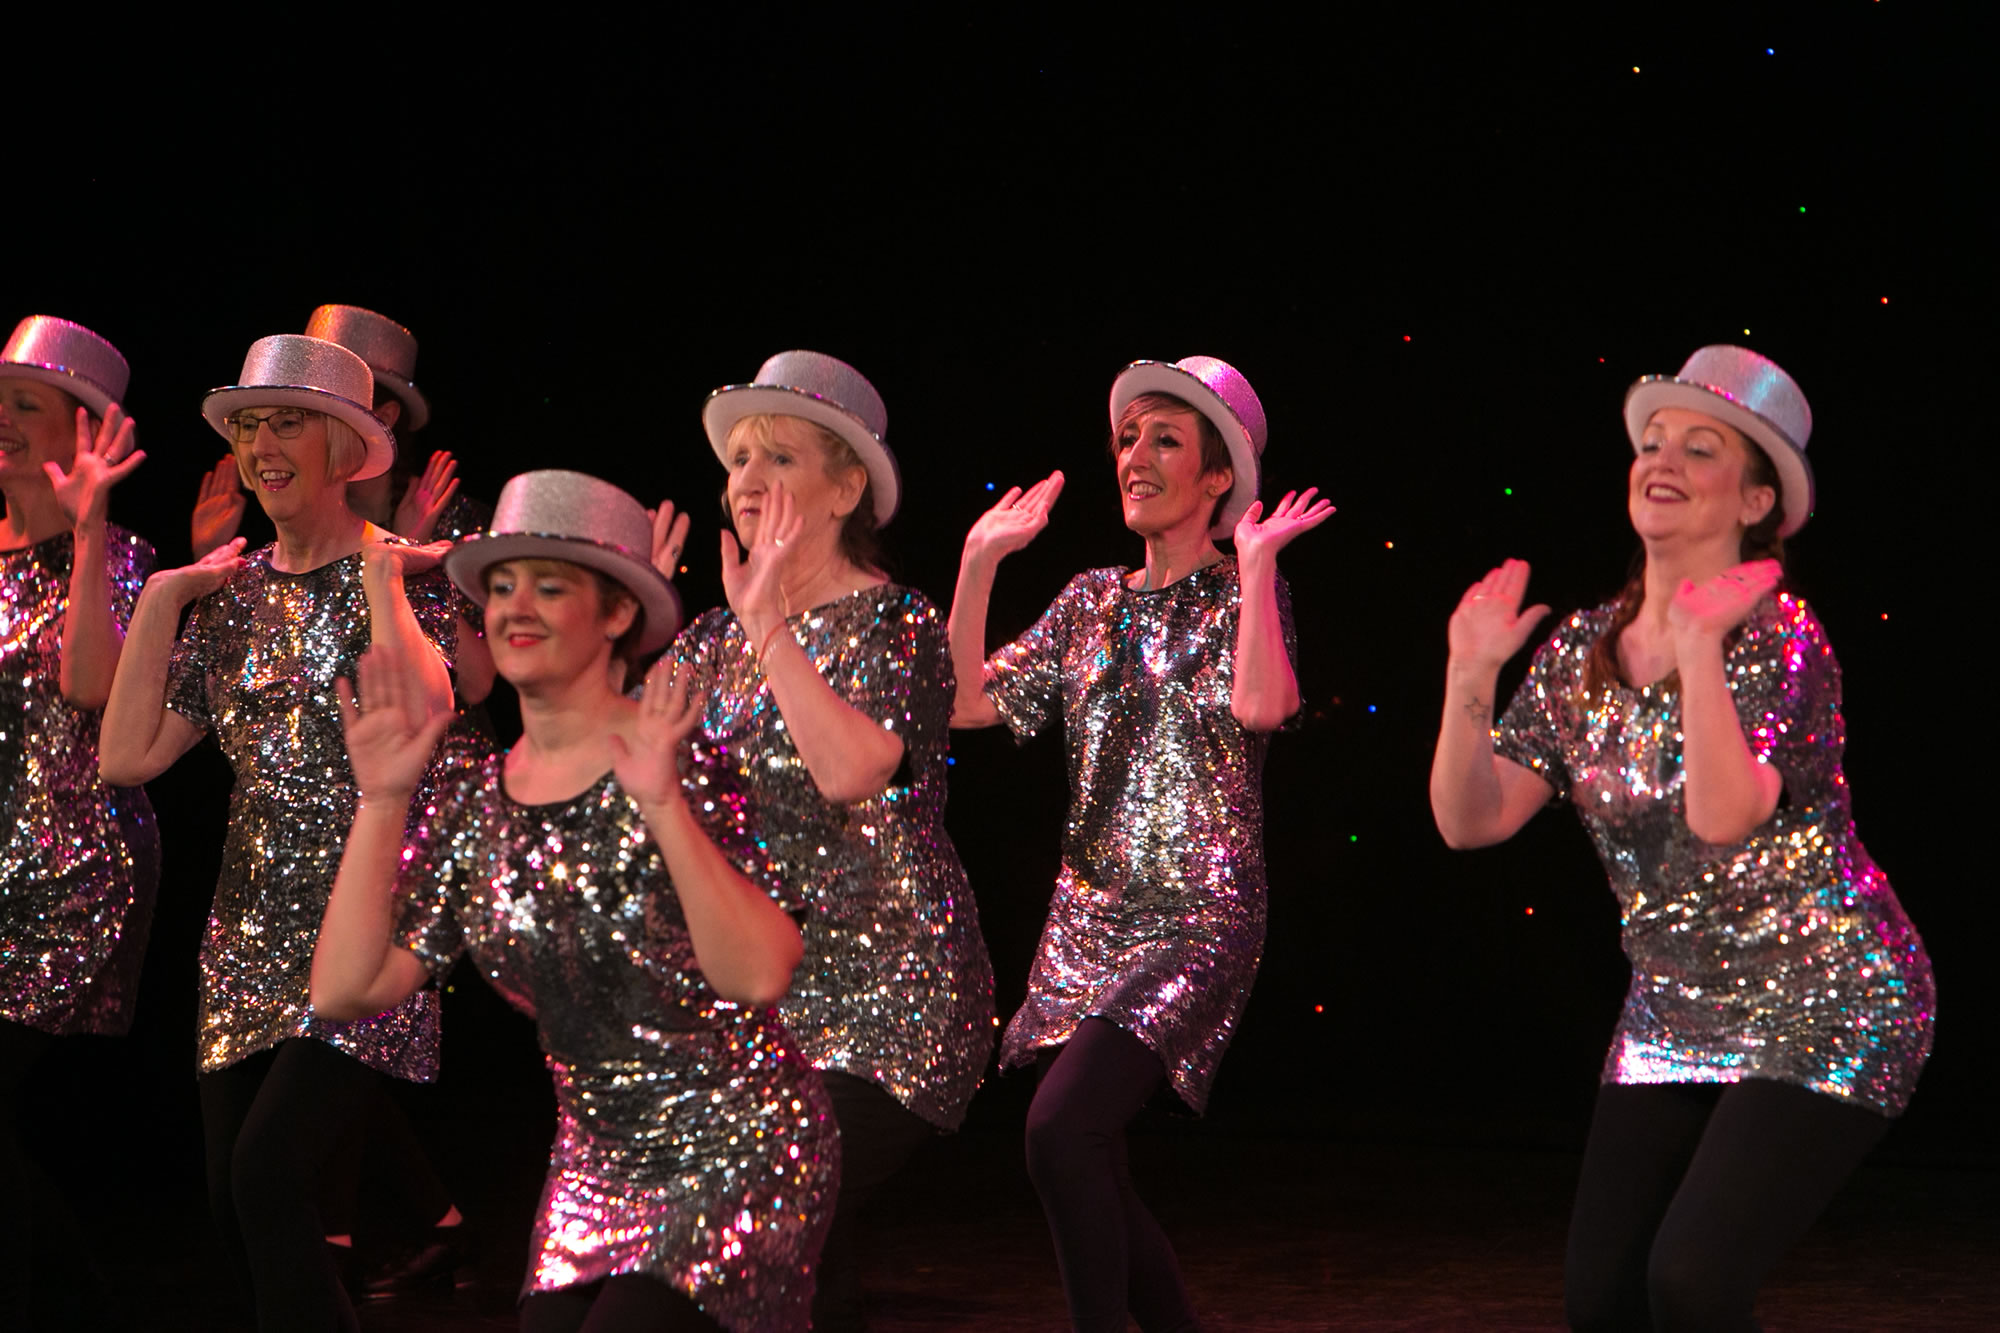 Hitchin_School_of_Dance_Show_2019-SM1_2927.jpg